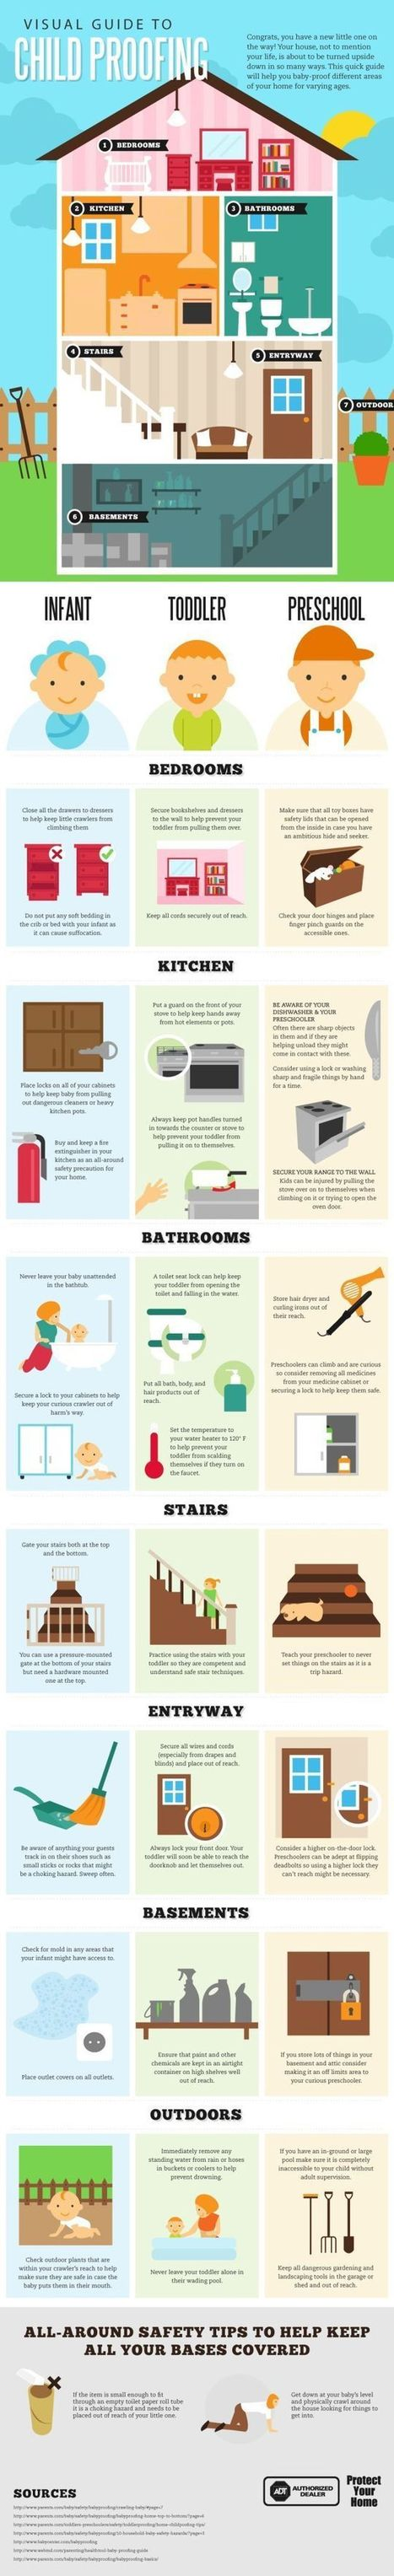 A Visual Guide To Child Proofing Your Home   Parenting Infographics   Scoop.it